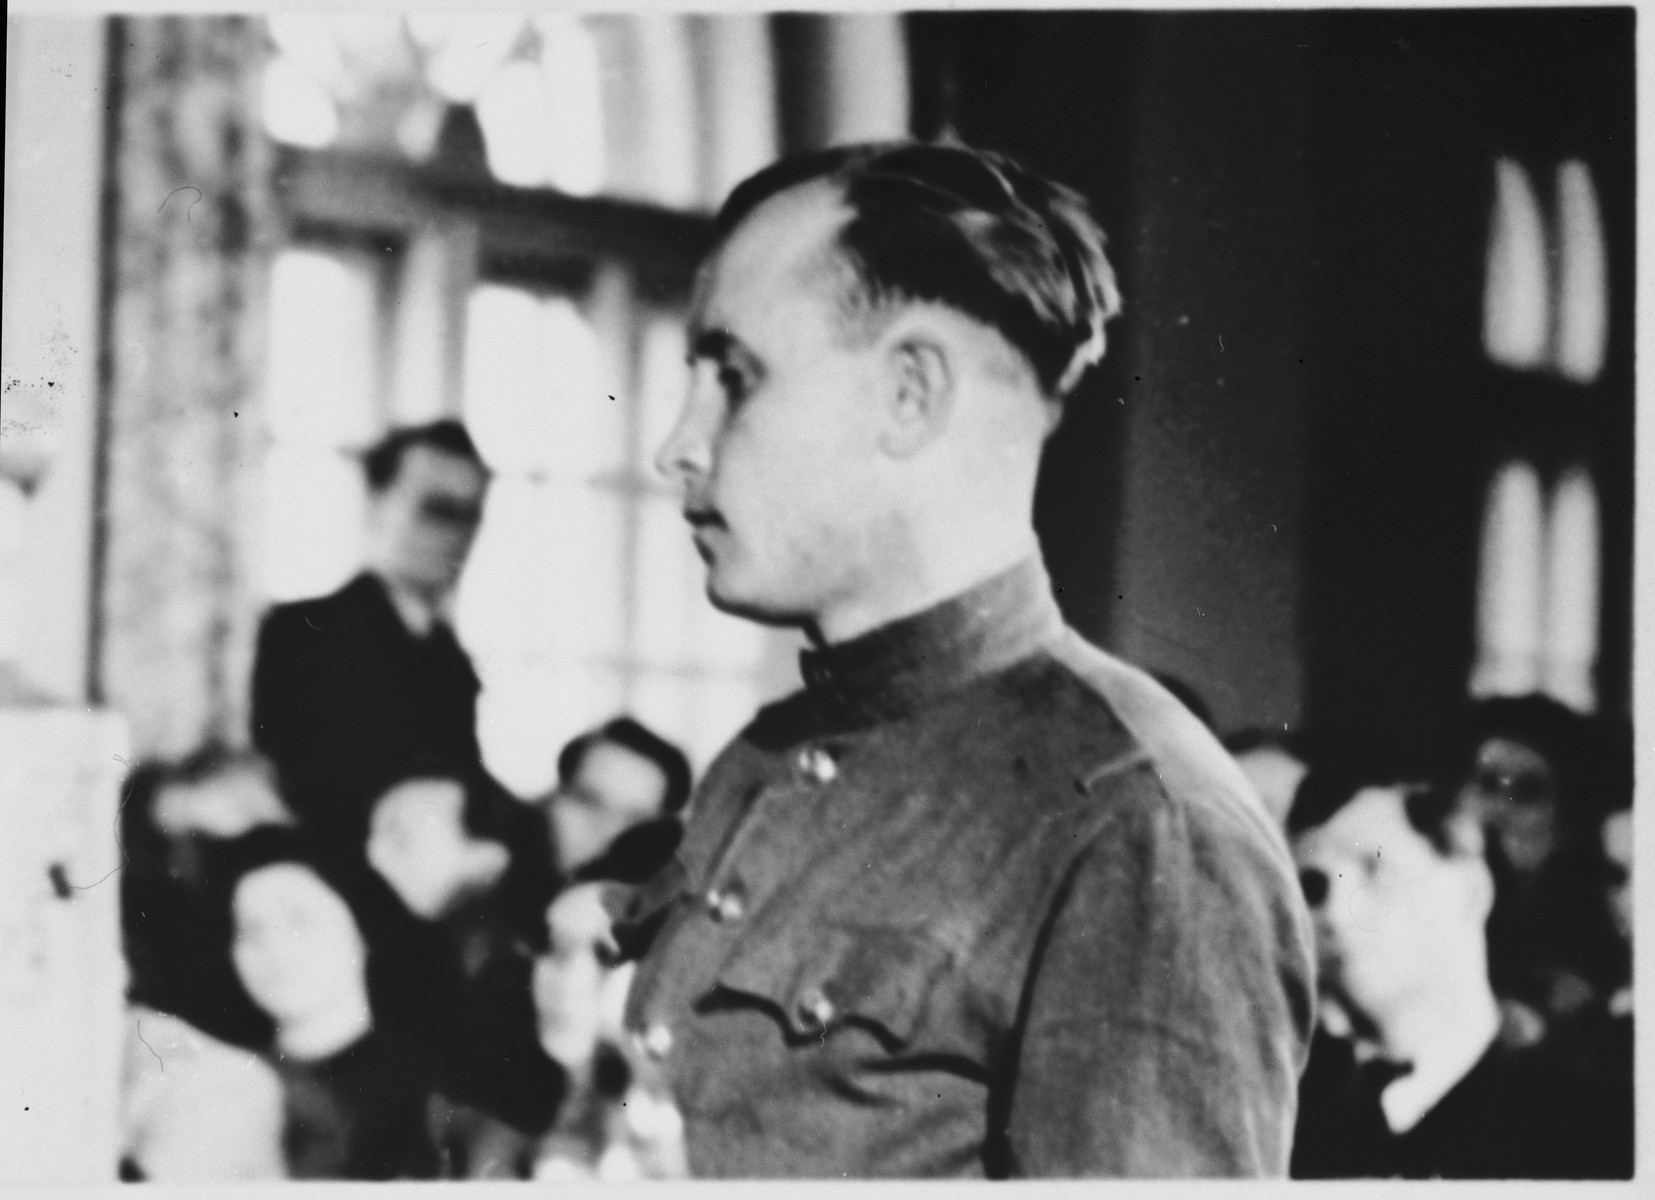 [A witness] testifies at the Sachsenhausen concentration camp war crimes trial in Berlin.